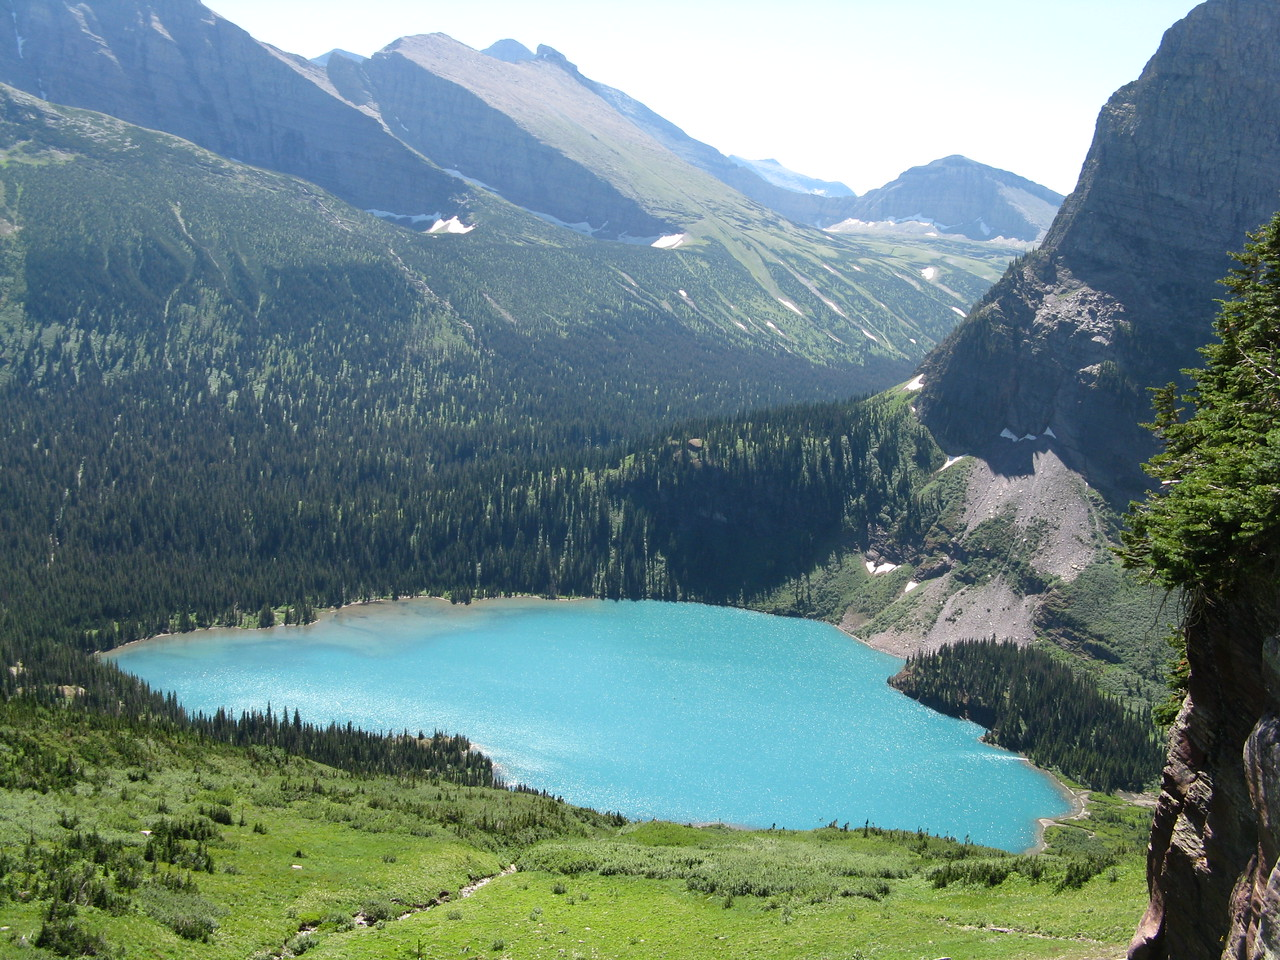 Looking back at Grinnell Lake.